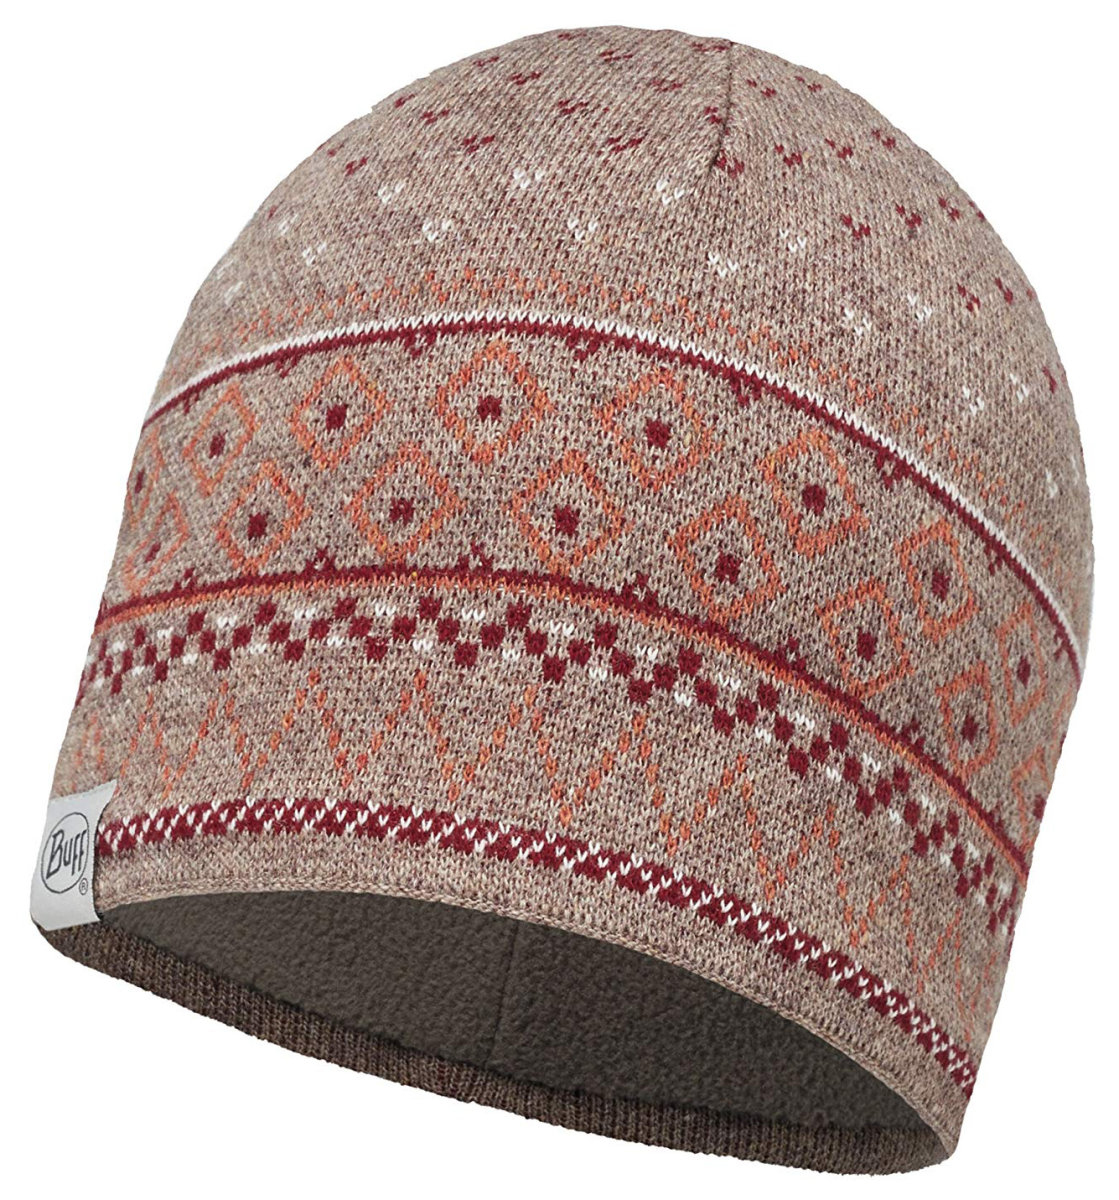 Шапка Buff Knitted & Polar Hat Edna fossil BU 113517.311.10.00